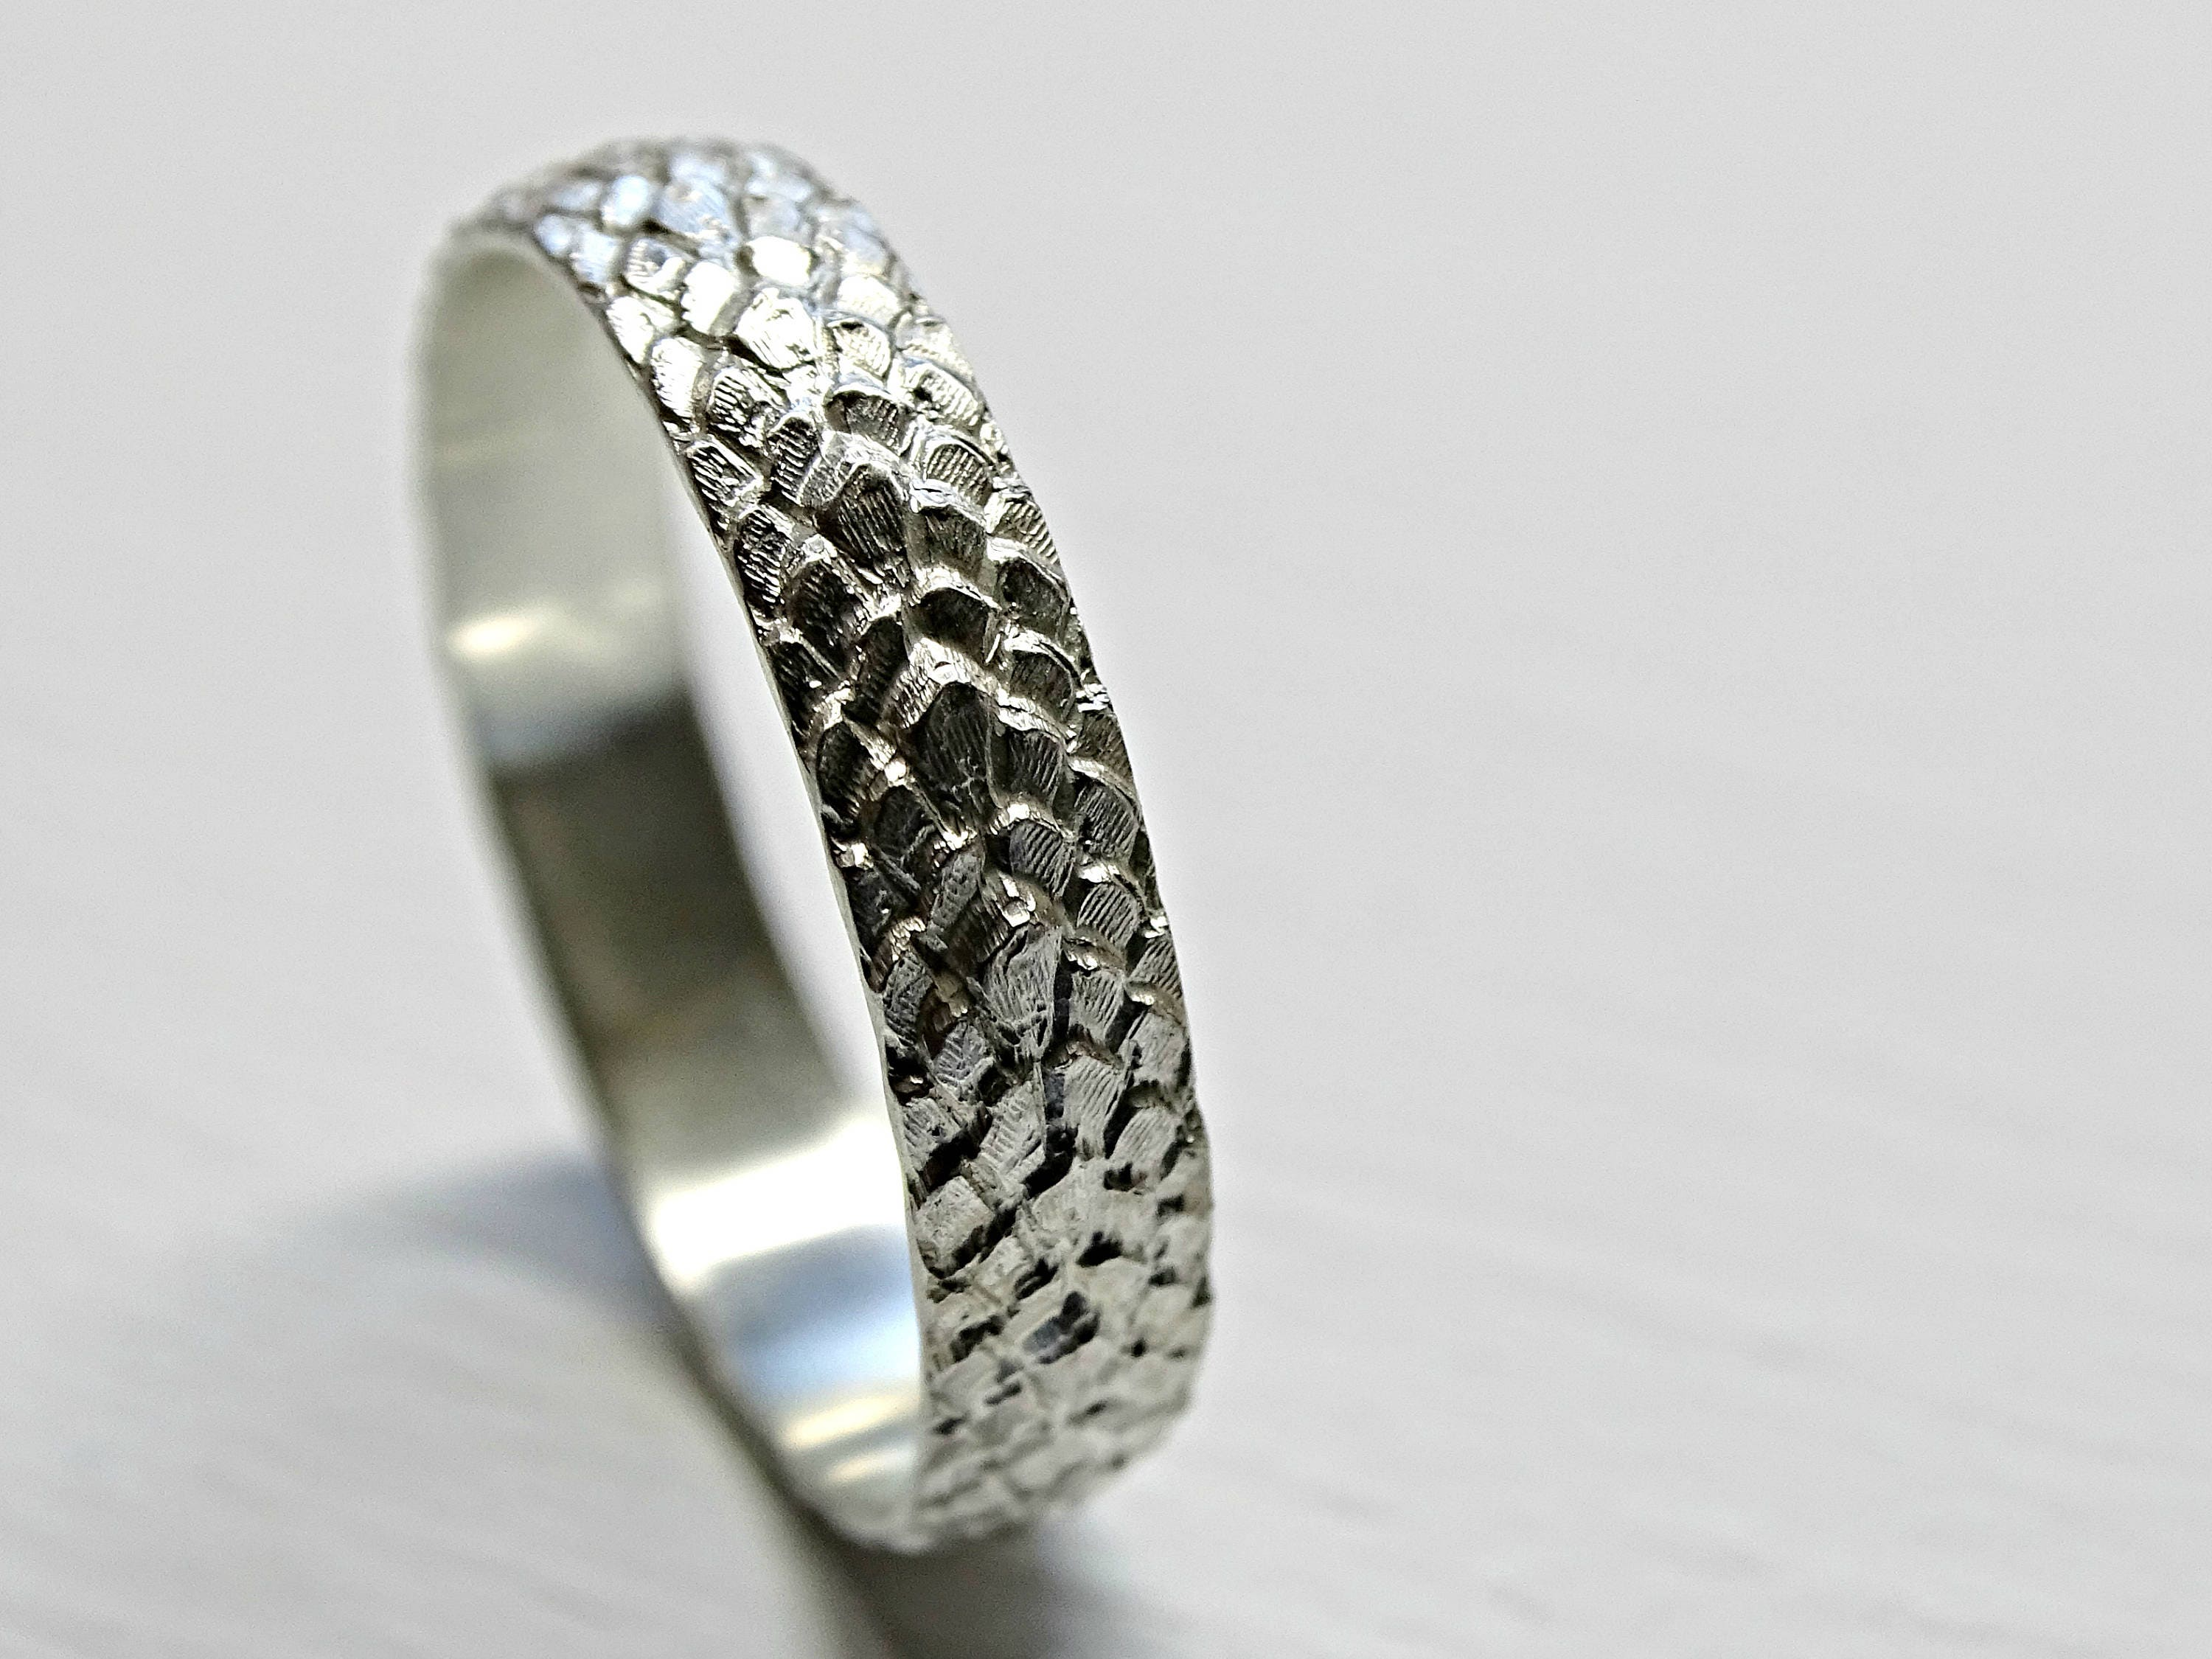 dragon scale ring silver feather ring me val wedding band